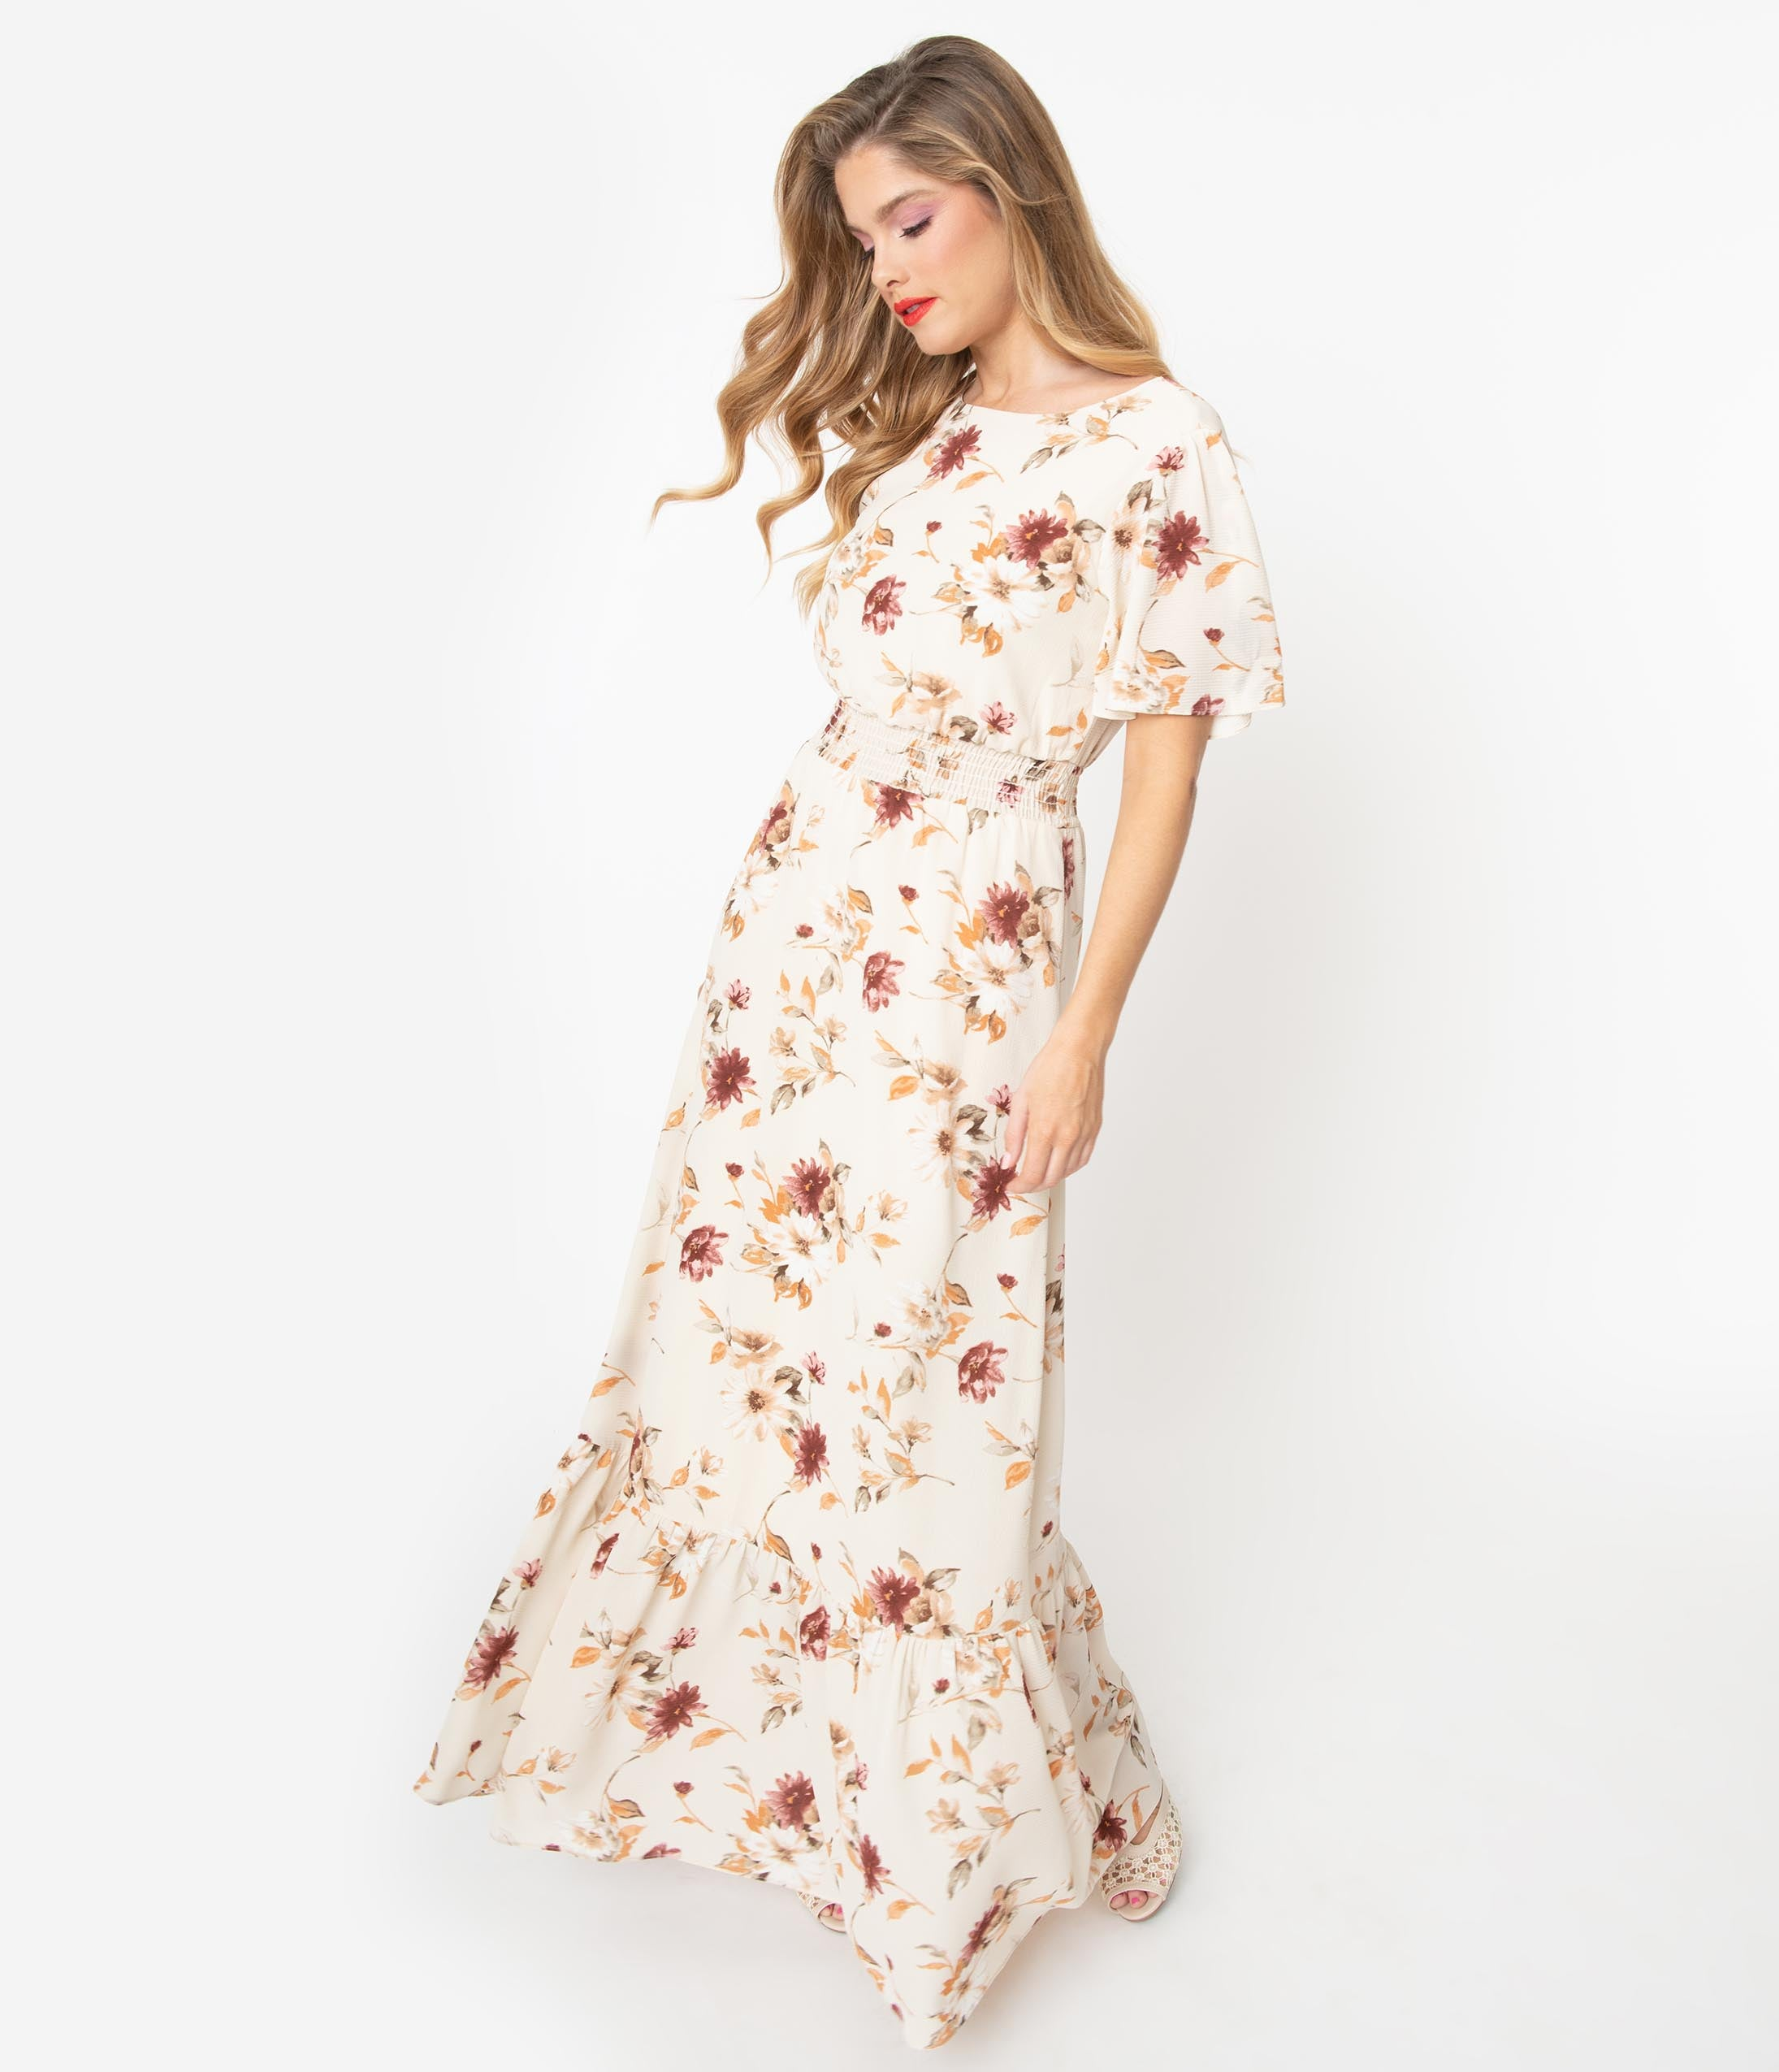 Swing Dance Clothing You Can Dance In 1940S Cream  Multi Floral Maxi Dress $78.00 AT vintagedancer.com